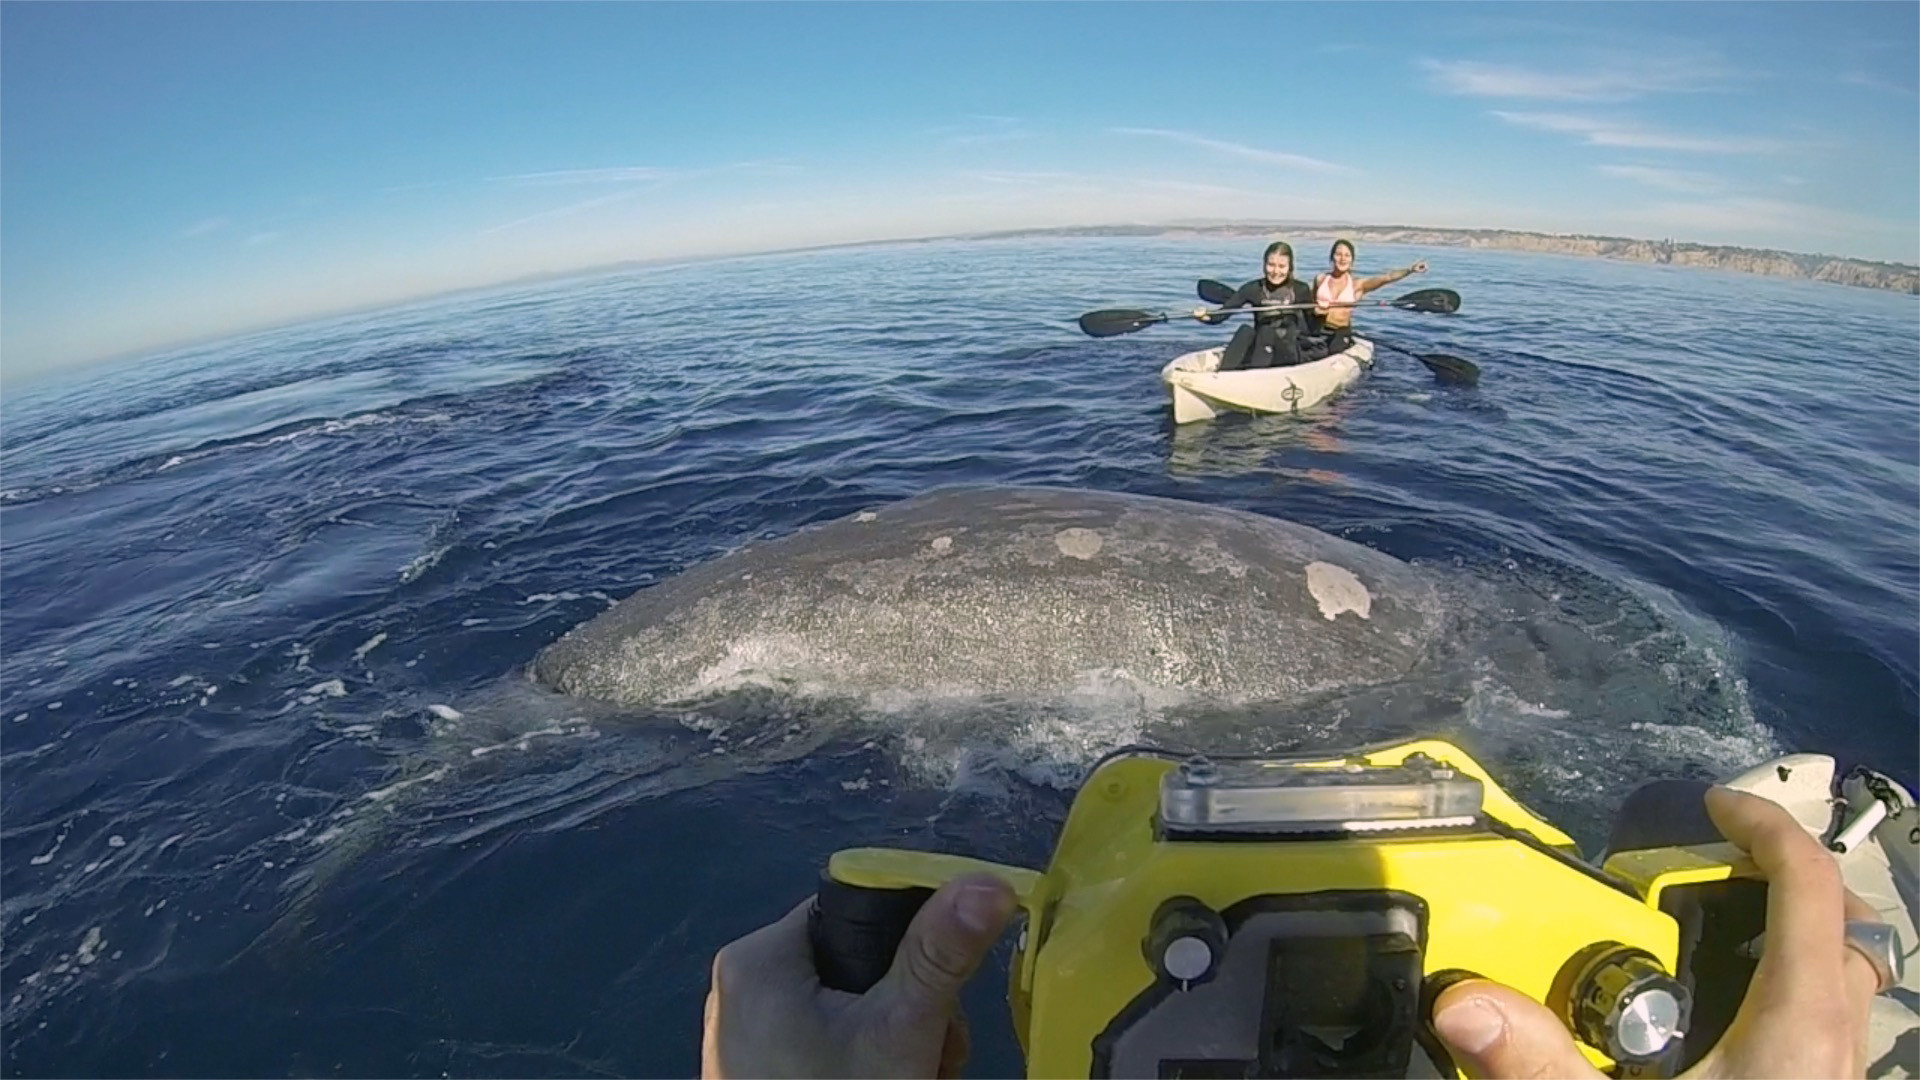 Between December and March, hundreds of grey whales make their annual journey from Alaska to Baja, p